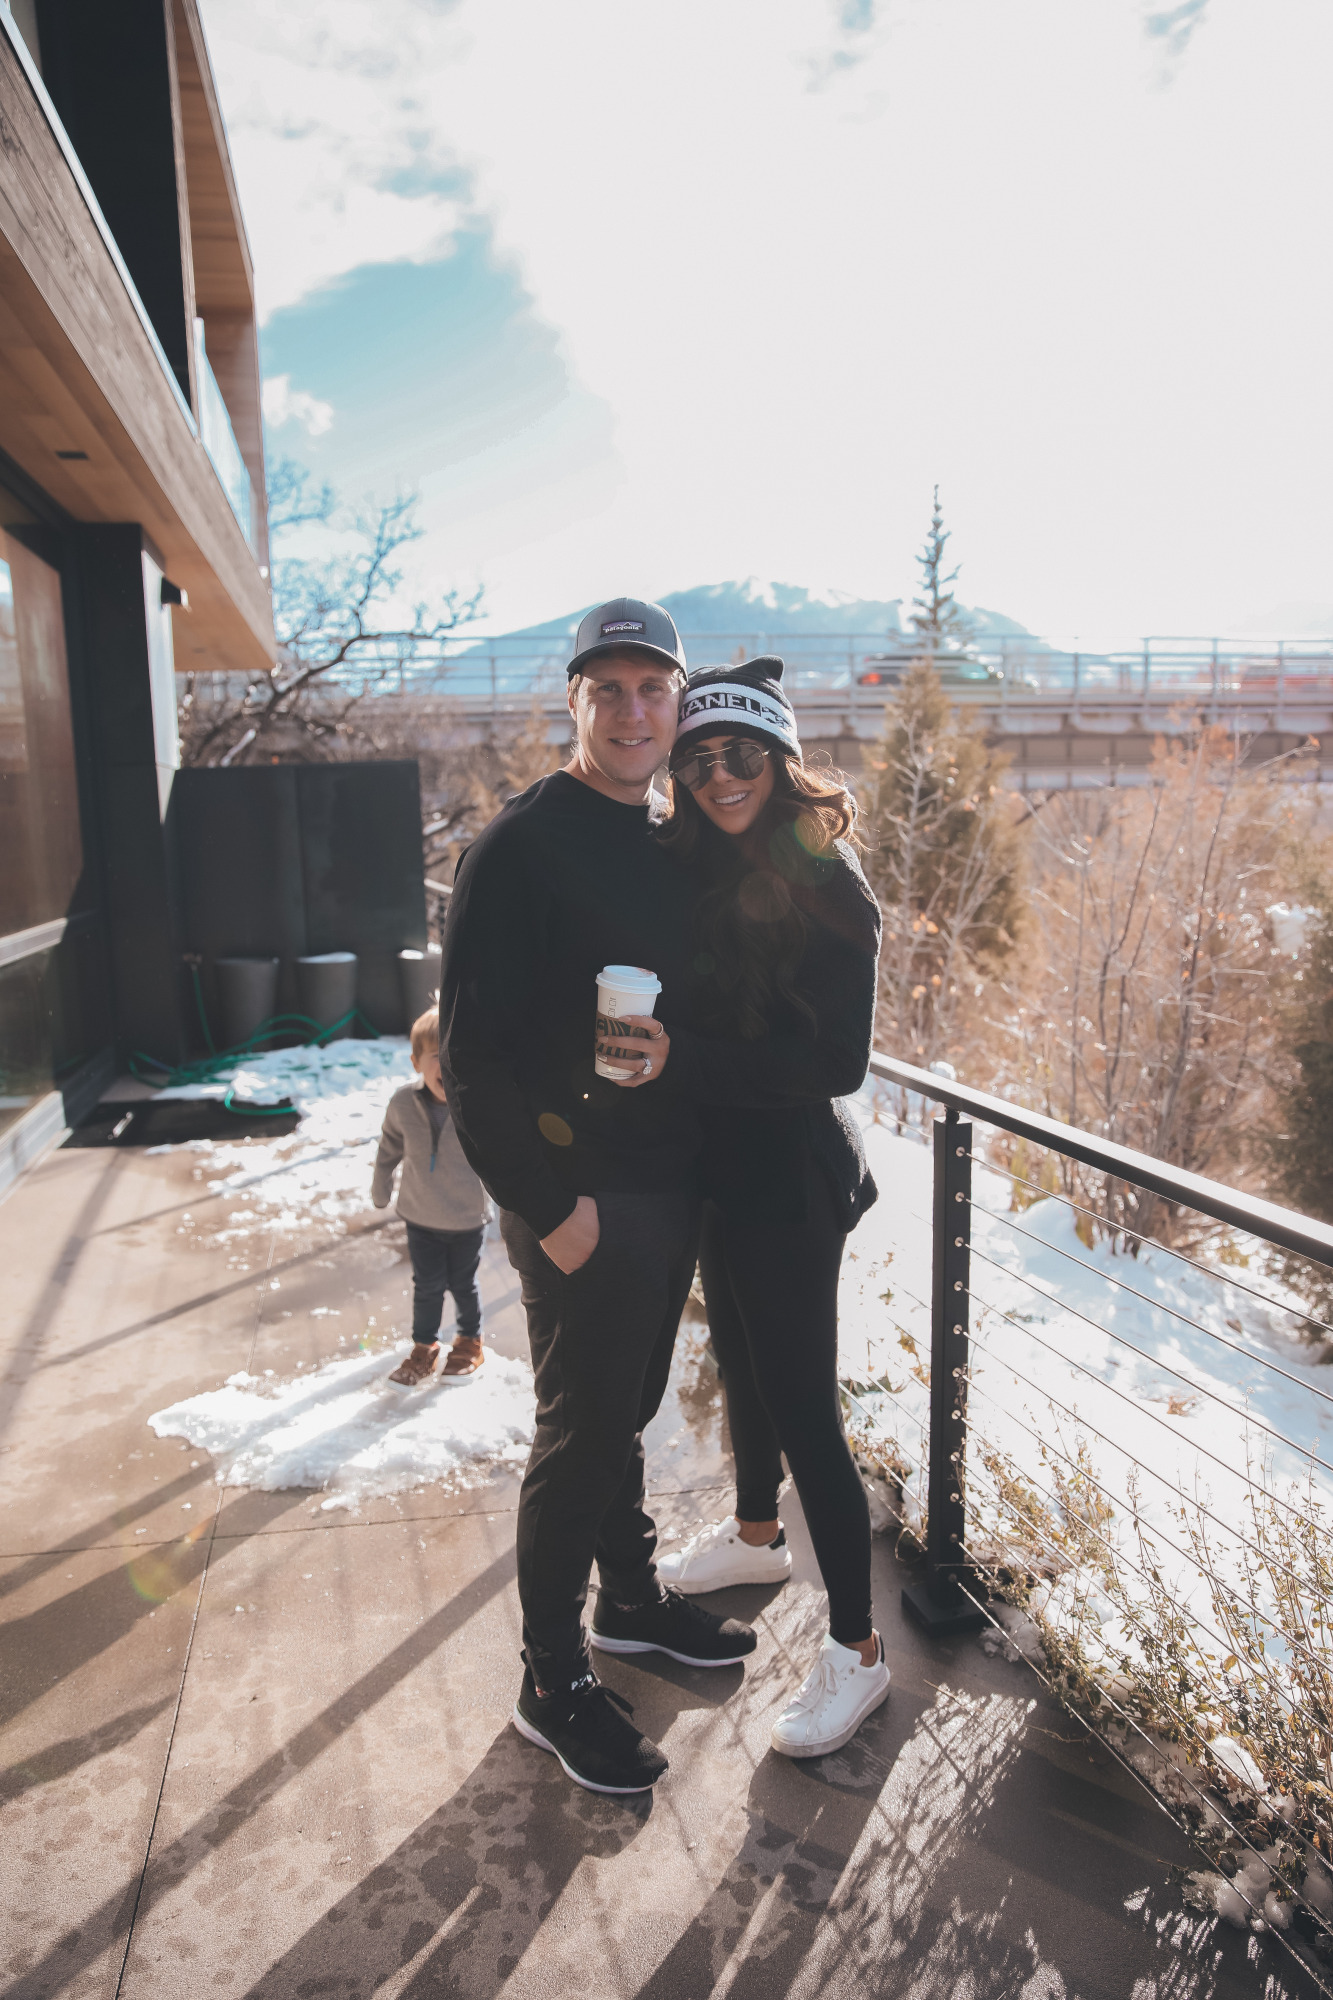 aspen fall 2020, emily gemma, John gemma, mens zella |Athleisure Wear by popular US fashion blog, The Sweetest Thing: image of a husband wearing a Logo Baseball Cap PATAGONIA, Pyrite Slim Fit Joggers ZELLA, and Crewneck Fleece Sweatshirt ZELLA, and a wife wearing a Furry Fleece Funnel Neck Pullover ZELLA, Booty Boost Active 7/8 Leggings SPANX,Charlie Platform Sneaker STEVE MADDEN,Panarea 60mm Aviator Sunglasses LE SPECS, and Lip Cheat Lip Liner CHARLOTTE TILBURY and standing together outside.